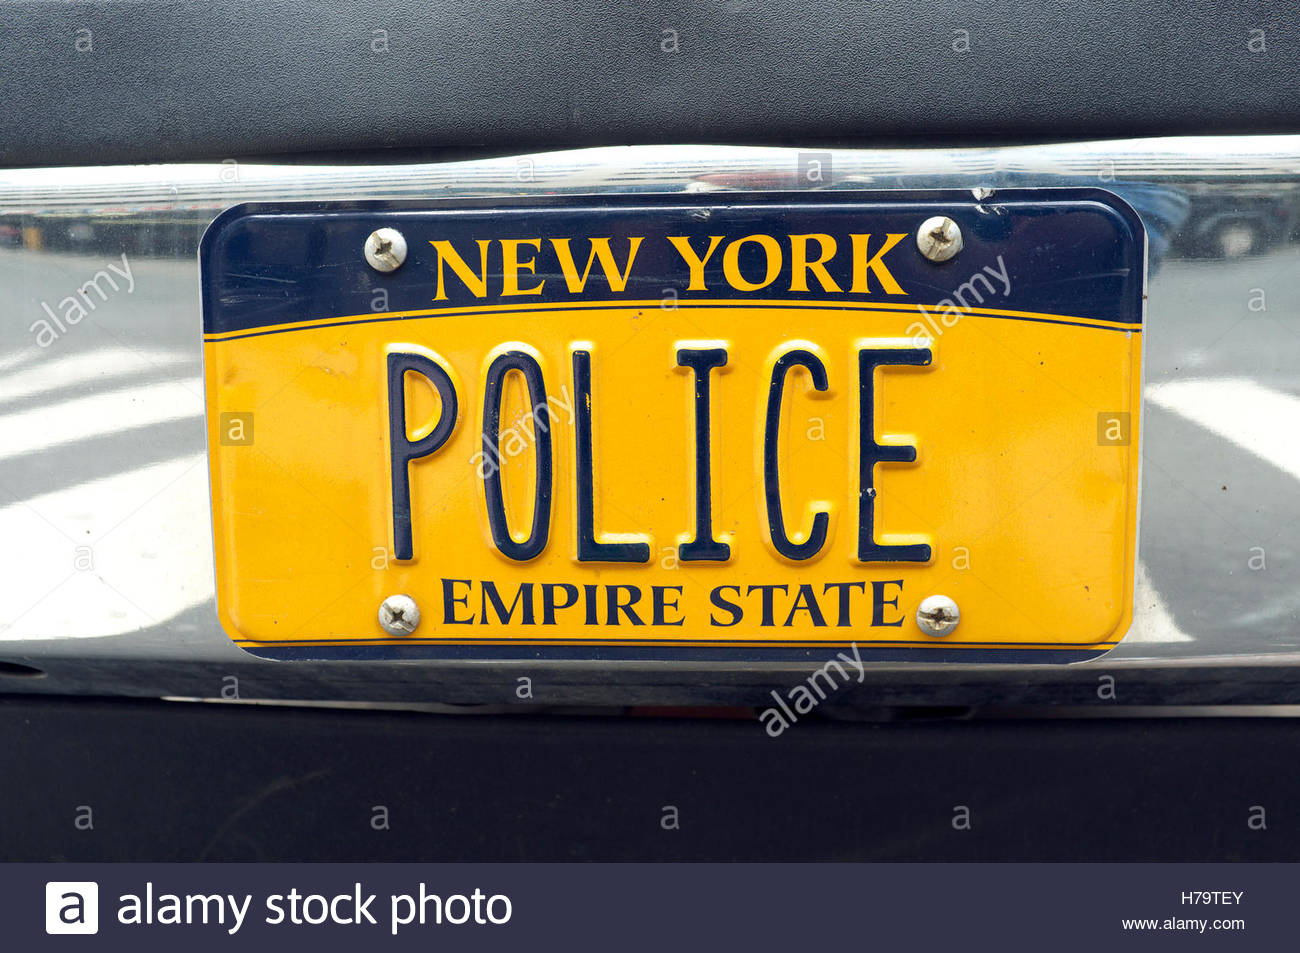 licence-plate-on-a-nypd-new-york-police-